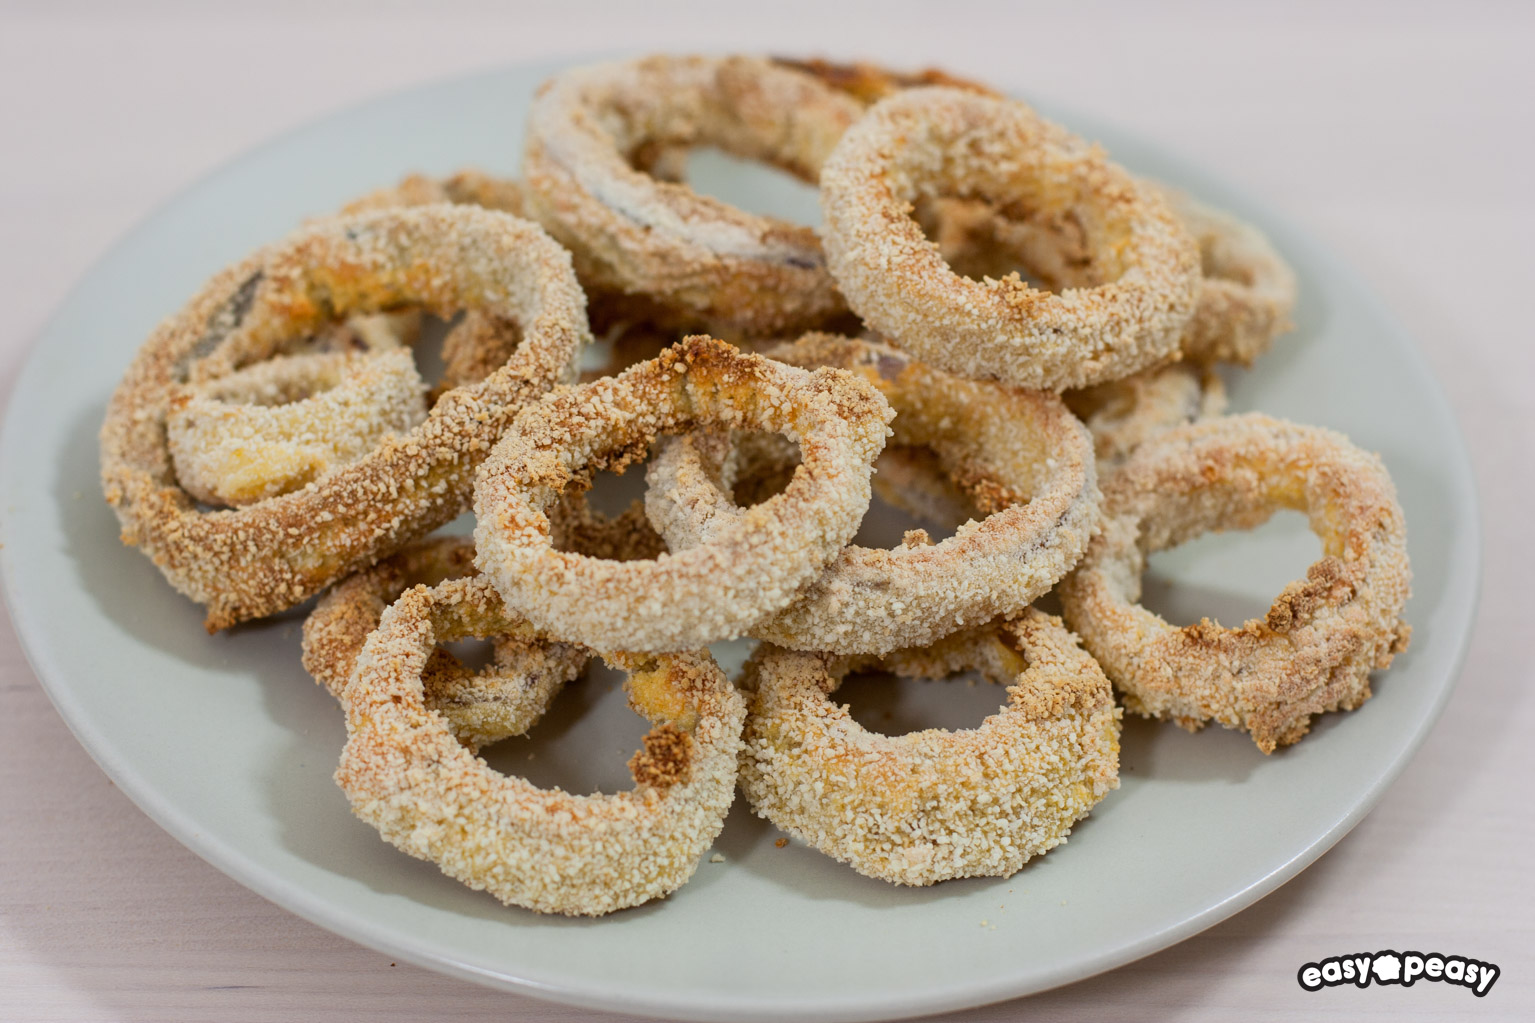 Onion rings al forno!